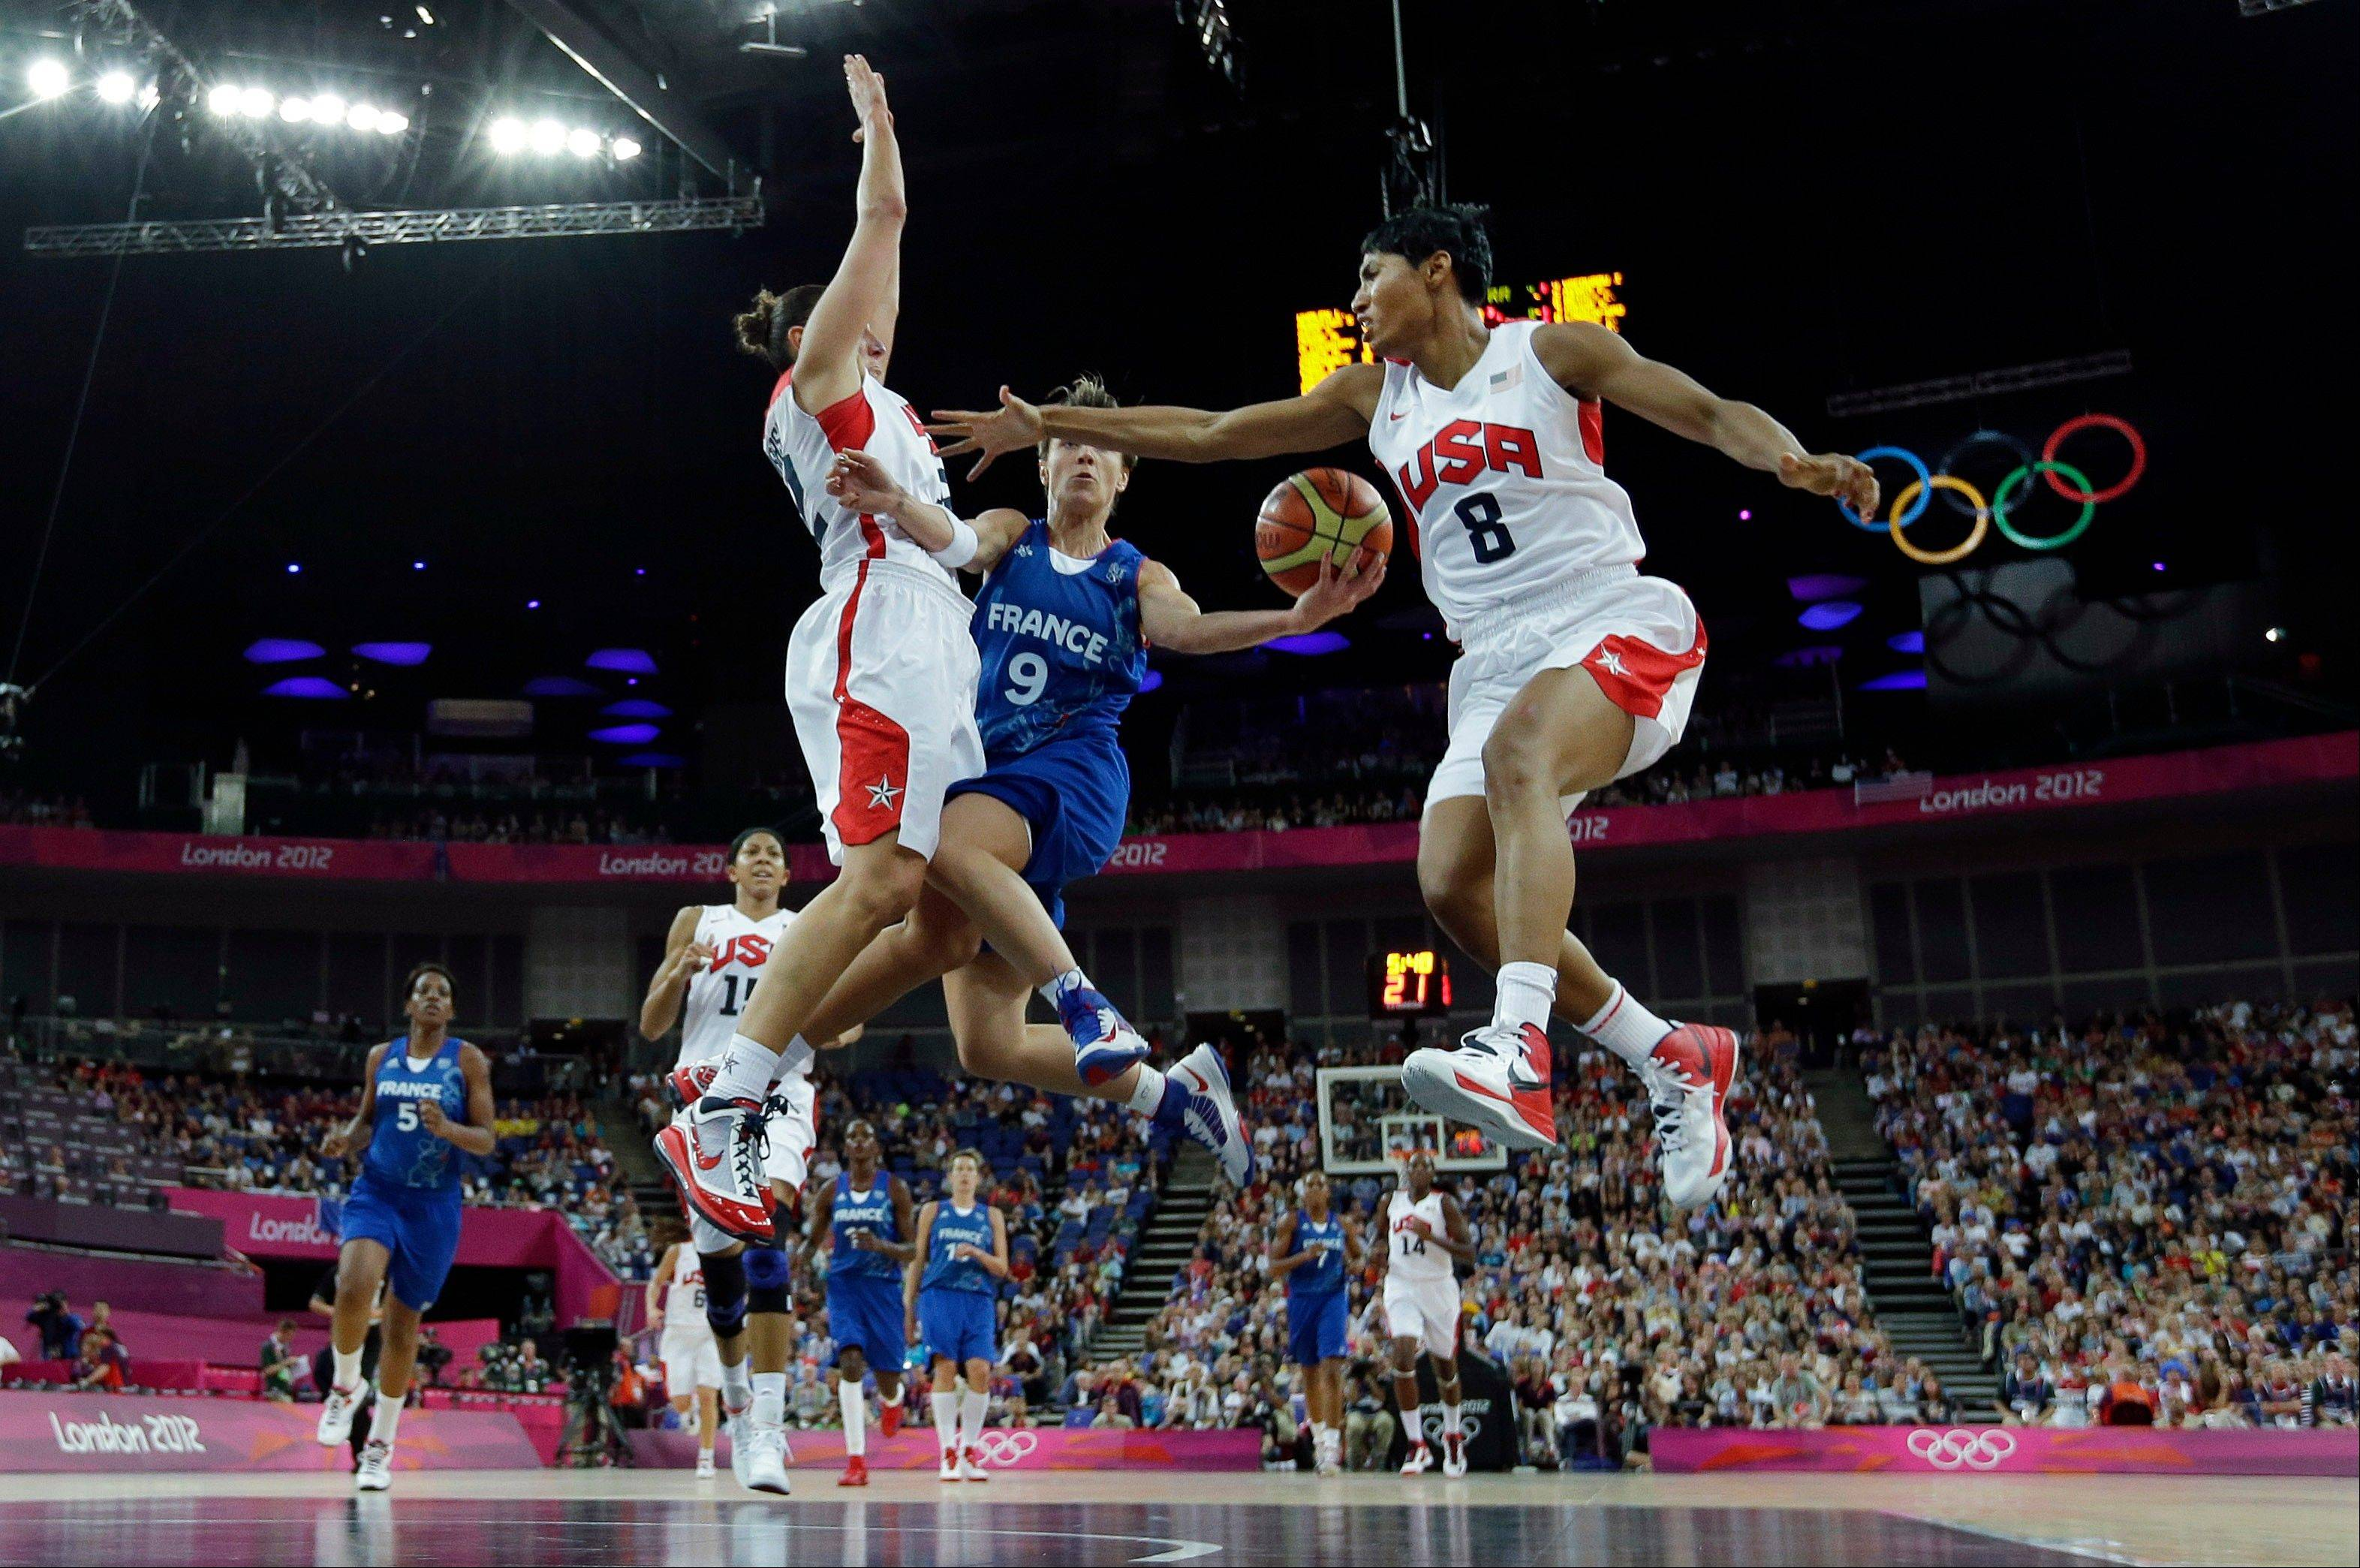 France's Celine Dumerc (9) drives to the basket as United States' Diana Taurasi, left, and Angel McCoughtry (8) defend during a women's gold medal basketball game at the 2012 Summer Olympics, Saturday, Aug. 11, 2012, in London.